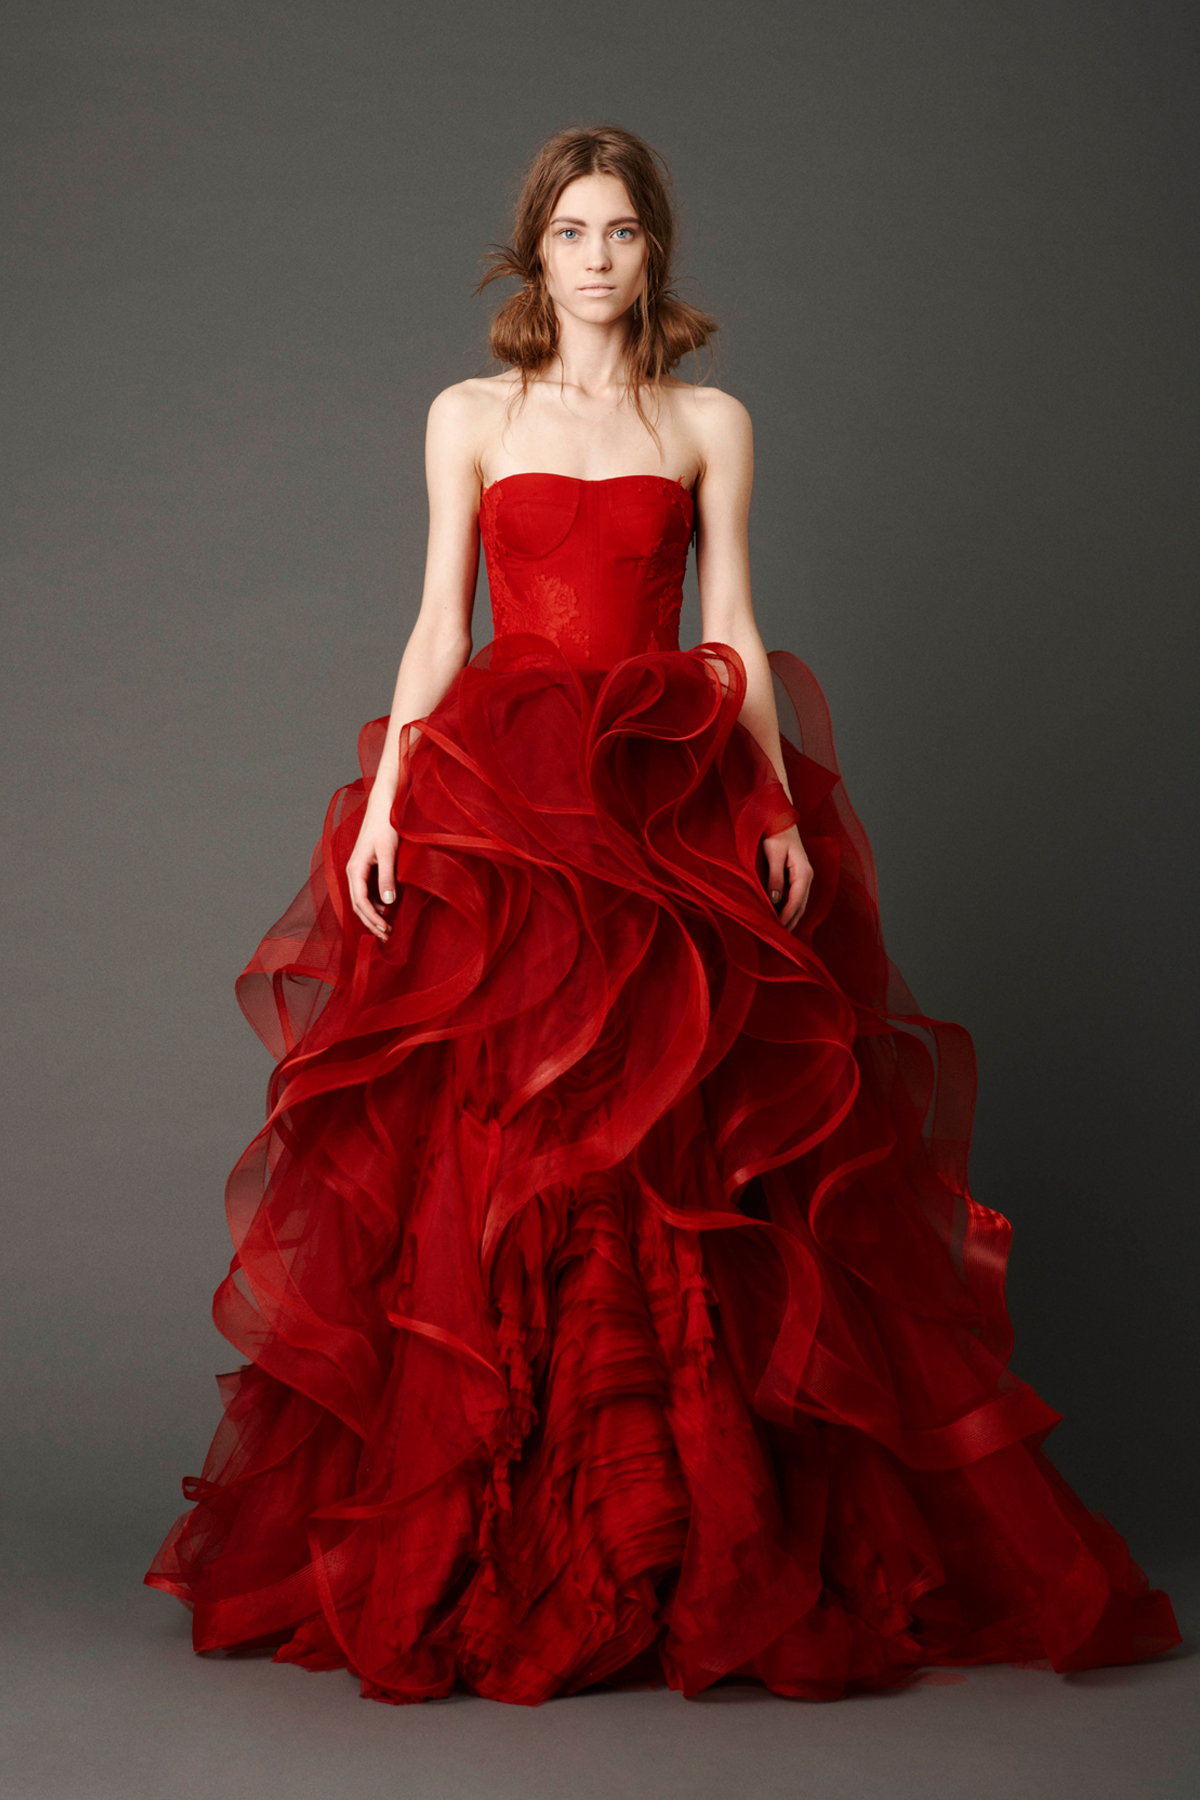 e5416c358571a Vera Wang On Her Wedding Gowns, Inspirations and Success | Bridal ...